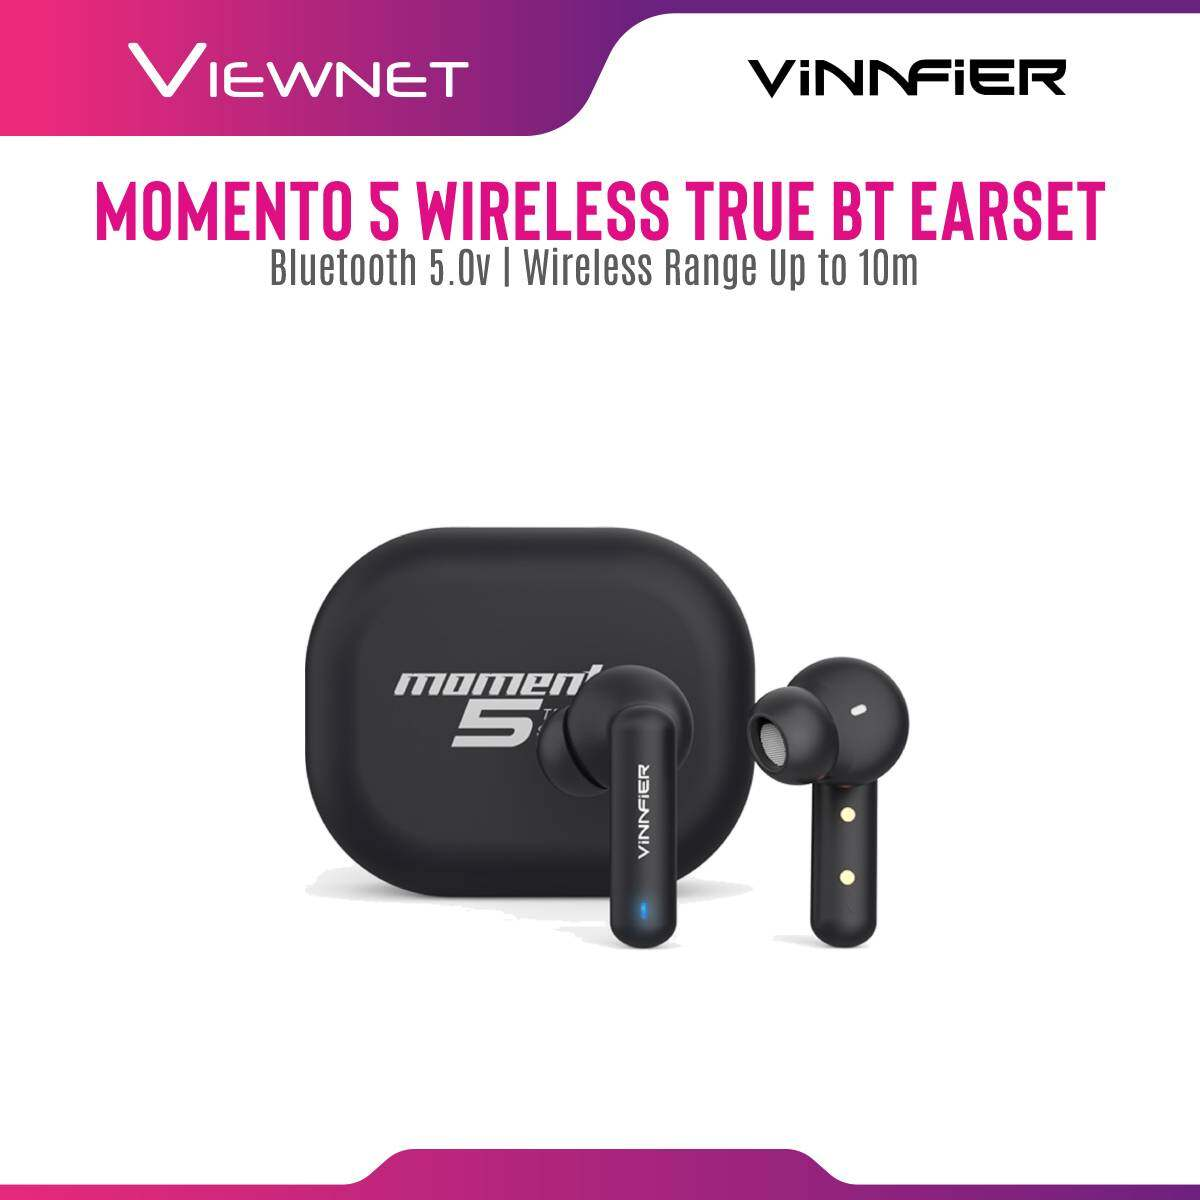 Vinnfier Momento 5 Wireless true Bluetooth Earbud with Bluetooth 5.0 , Up to 4 hours Play time, Wireless Range 10 meter